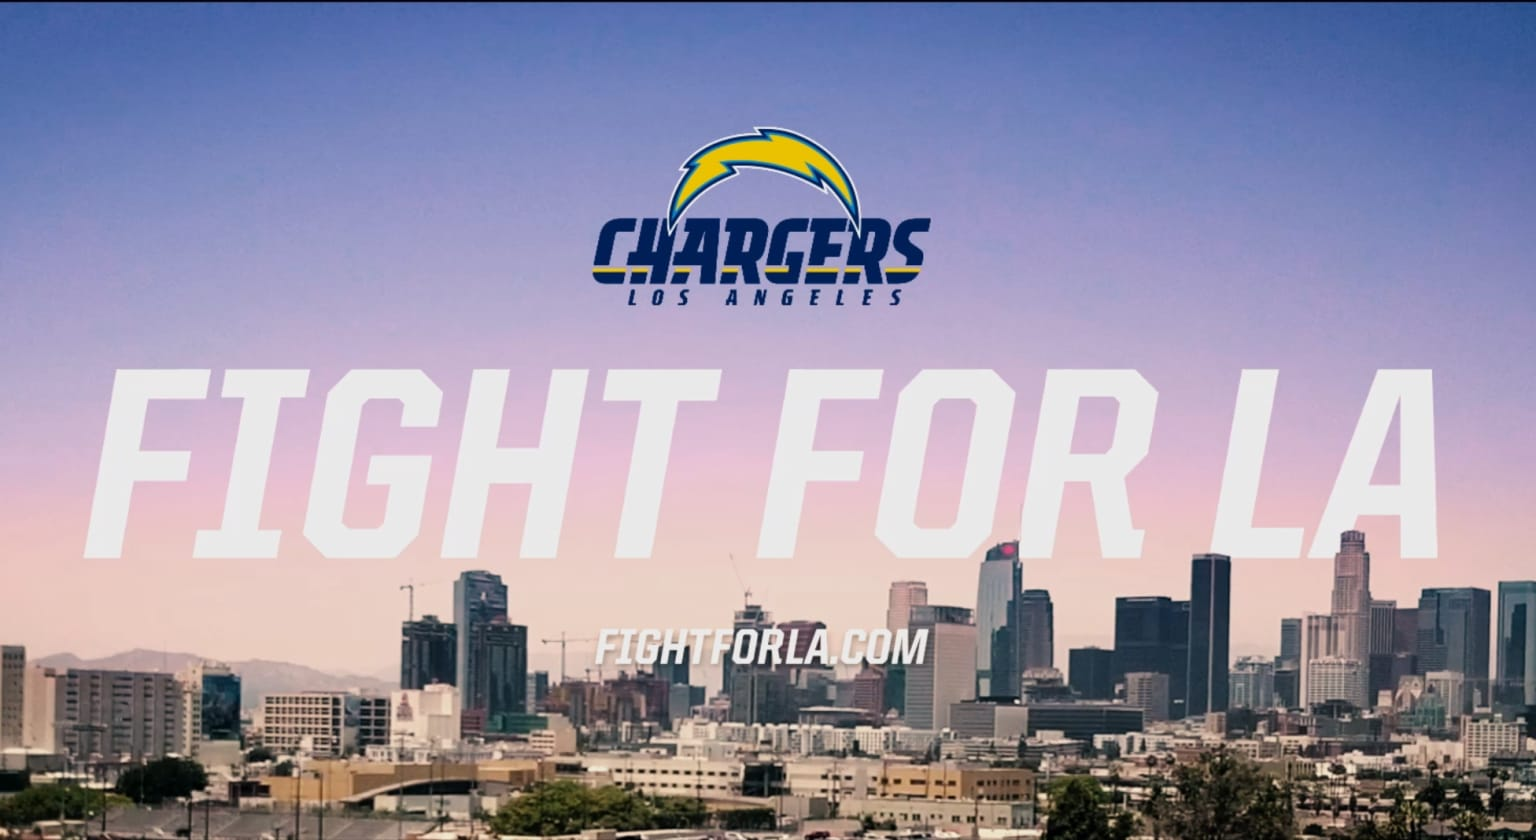 Chargers Fight for LA